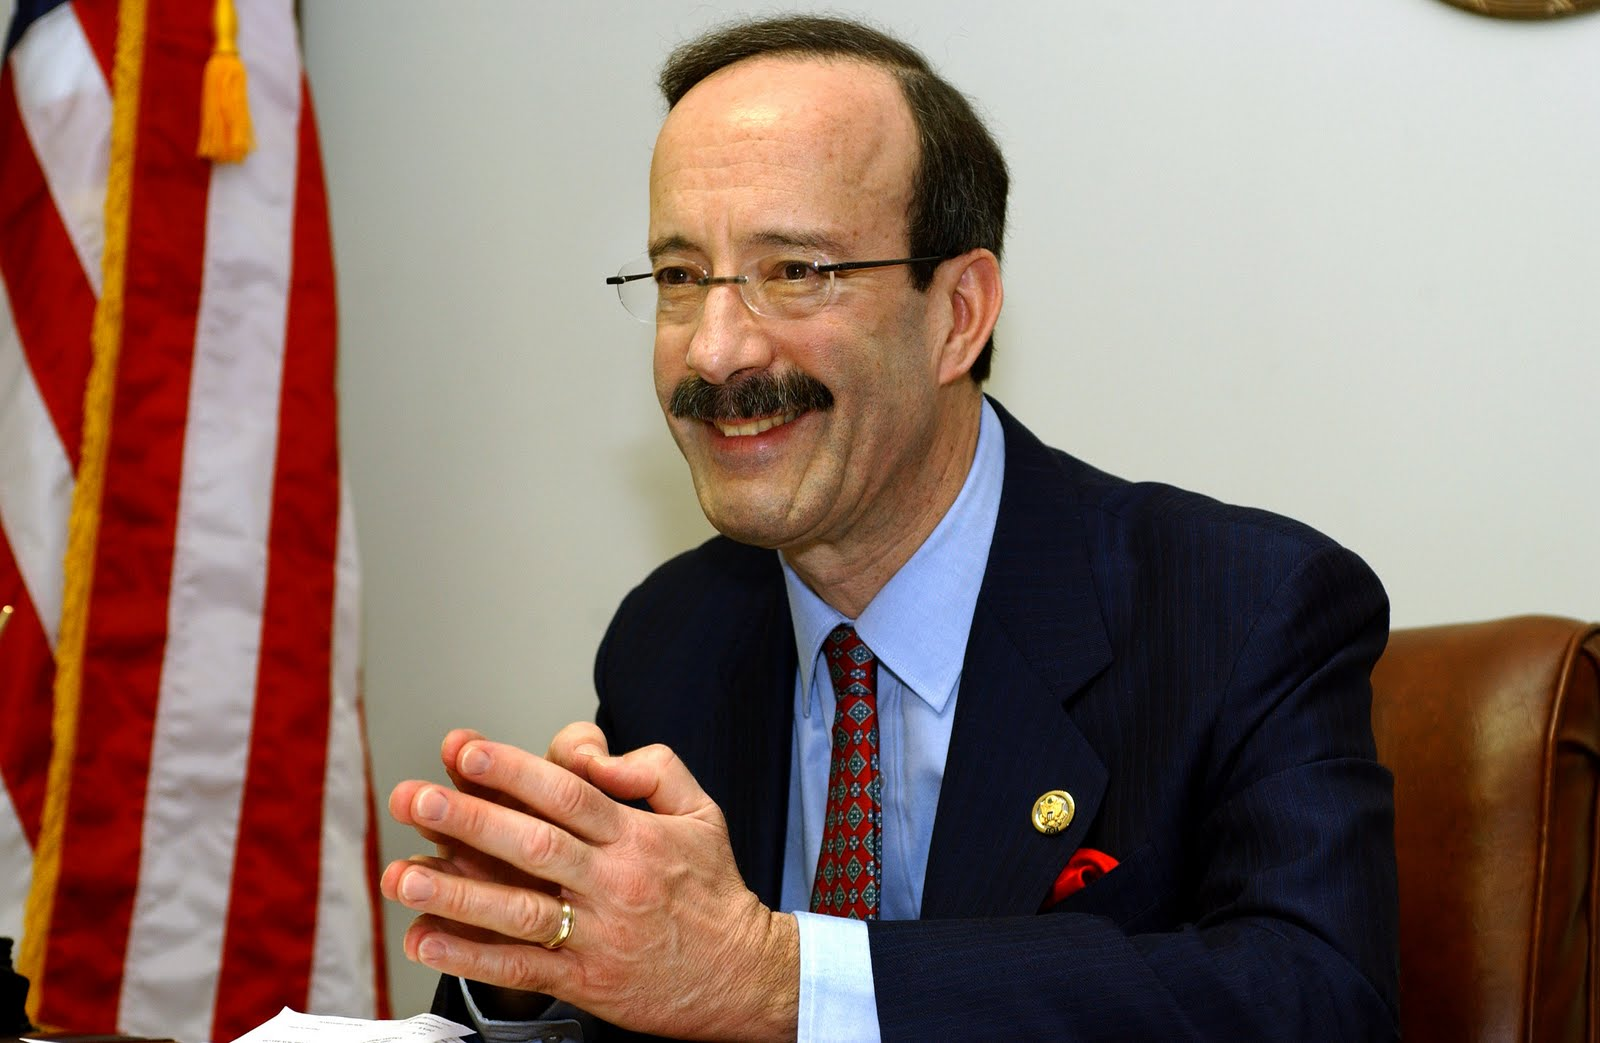 Rep. Eliot Engel, (D-NY), and 81 others in the House are asking for the President to decree on comprehensive ban on imported firearms. (Photo credit: NY Daily News)